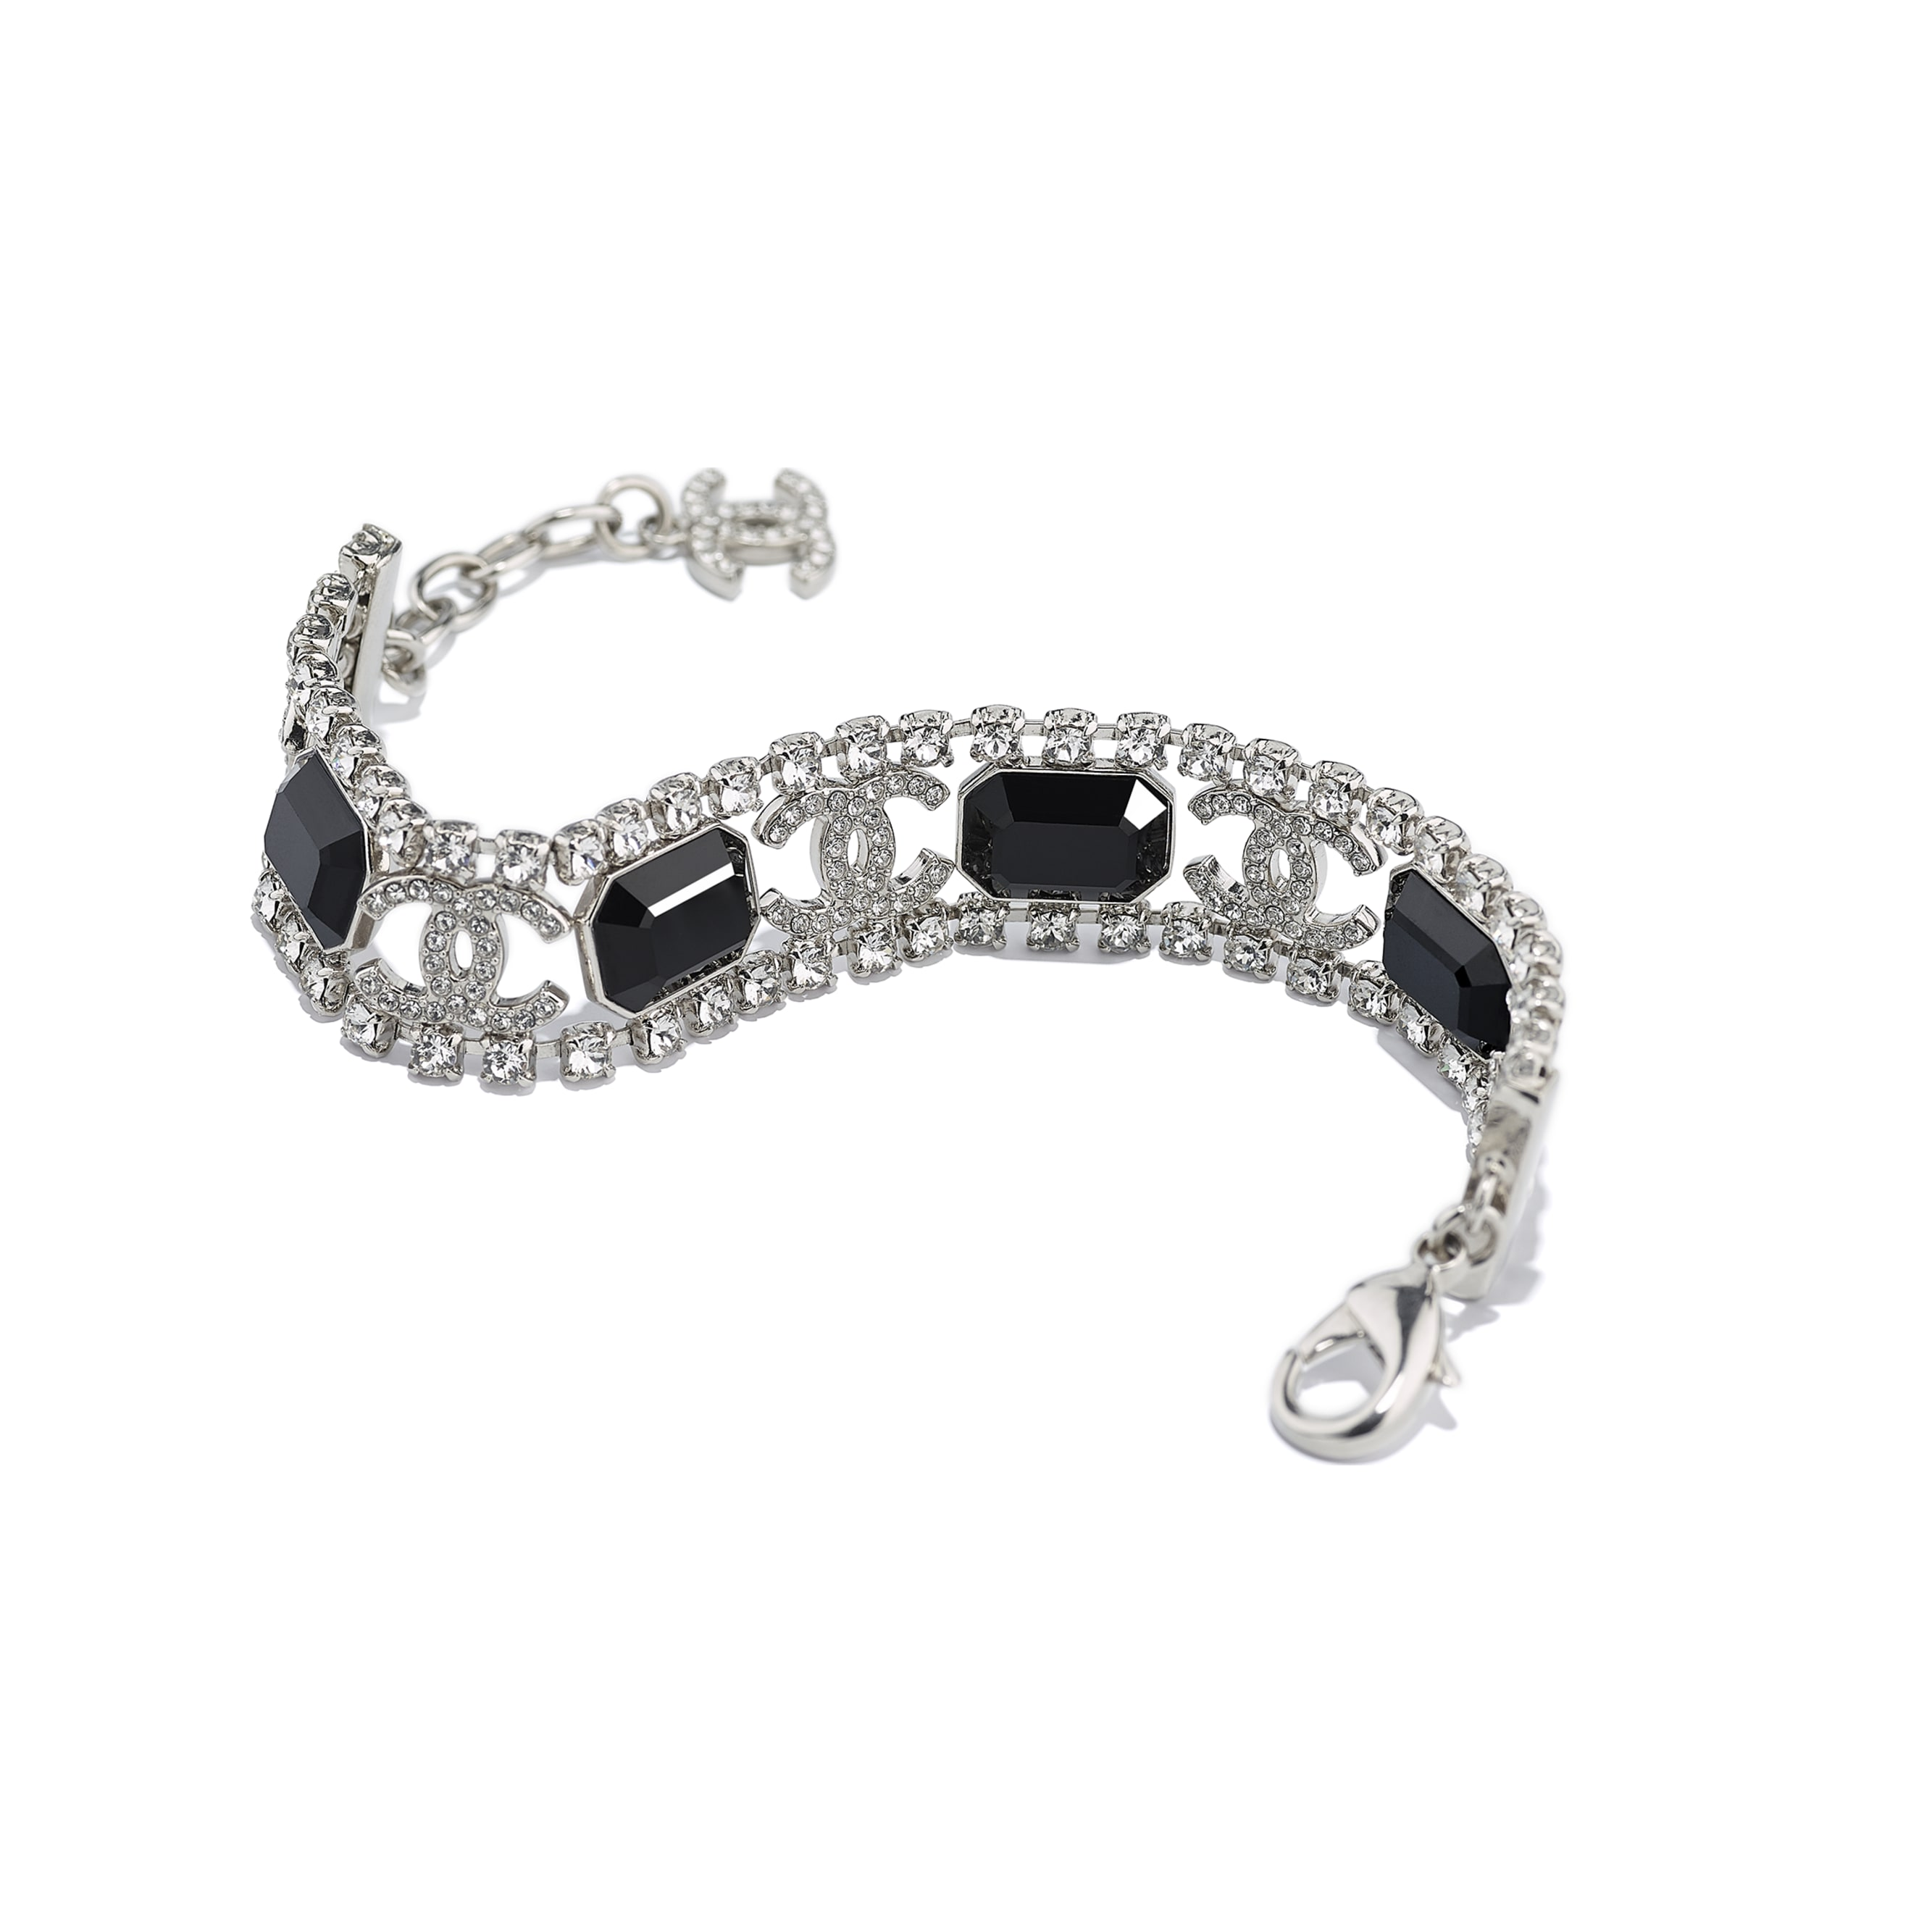 Bracelet - Silver, Crystal & Black - Metal & Diamantés - CHANEL - Alternative view - see standard sized version